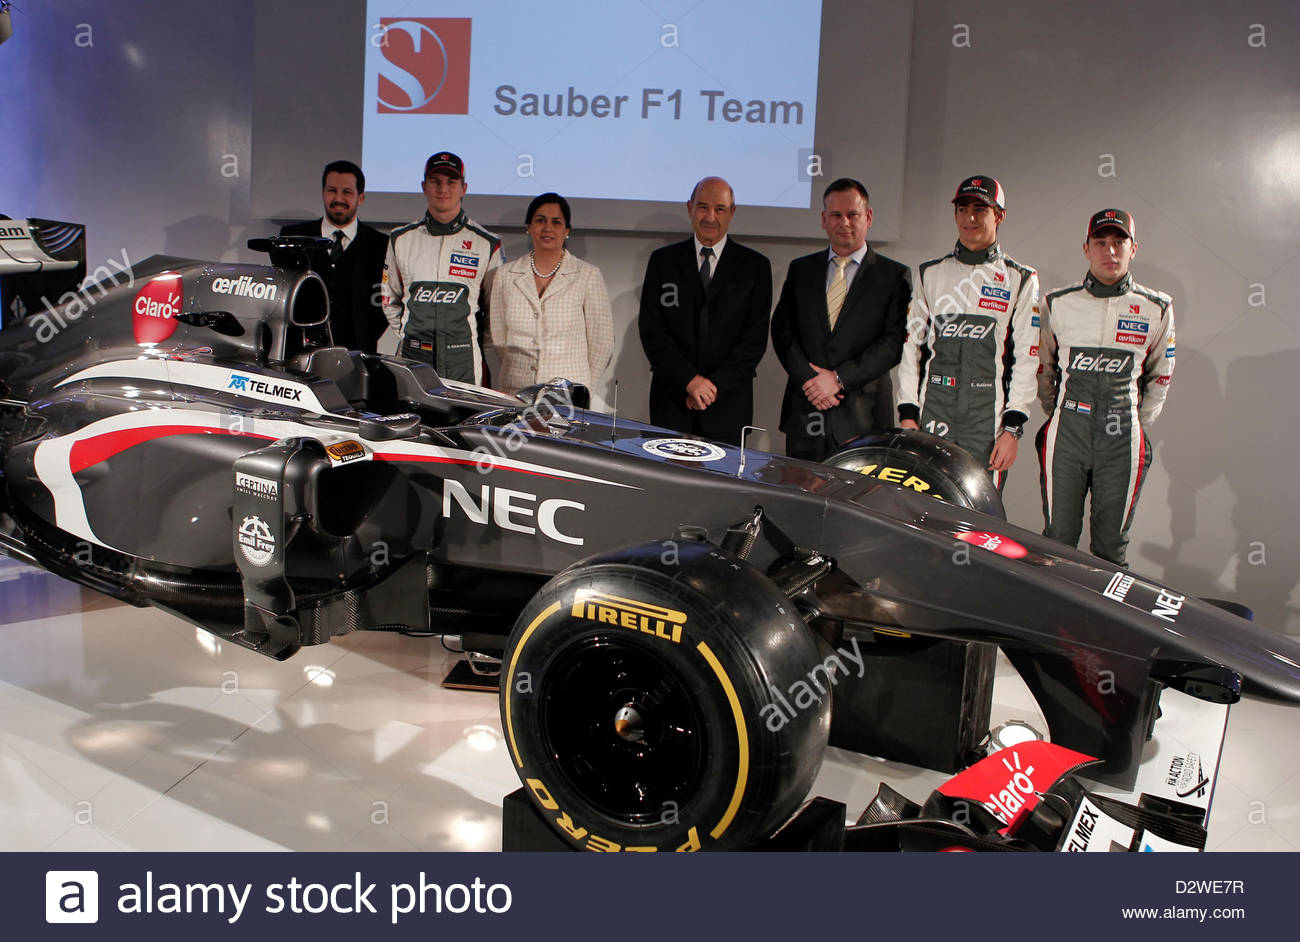 sauber f1 team launches the new sauber c32 ferrari at their factory stock photo 53420411 alamy. Black Bedroom Furniture Sets. Home Design Ideas